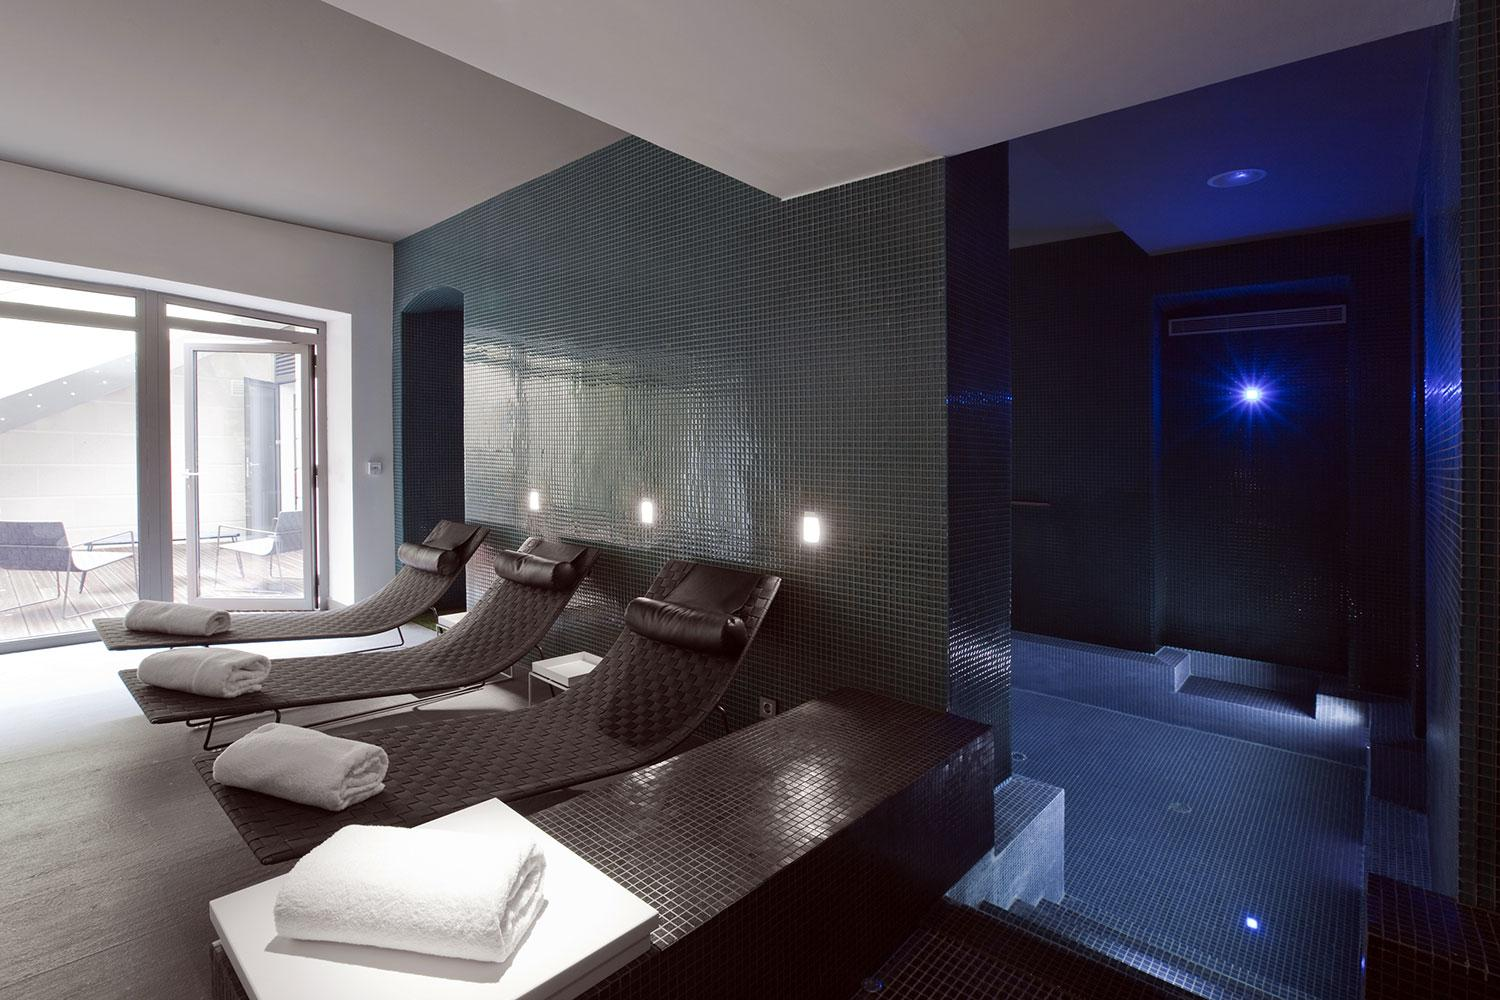 hotel spa marseille c2 hotel hotel luxe spa marseille. Black Bedroom Furniture Sets. Home Design Ideas